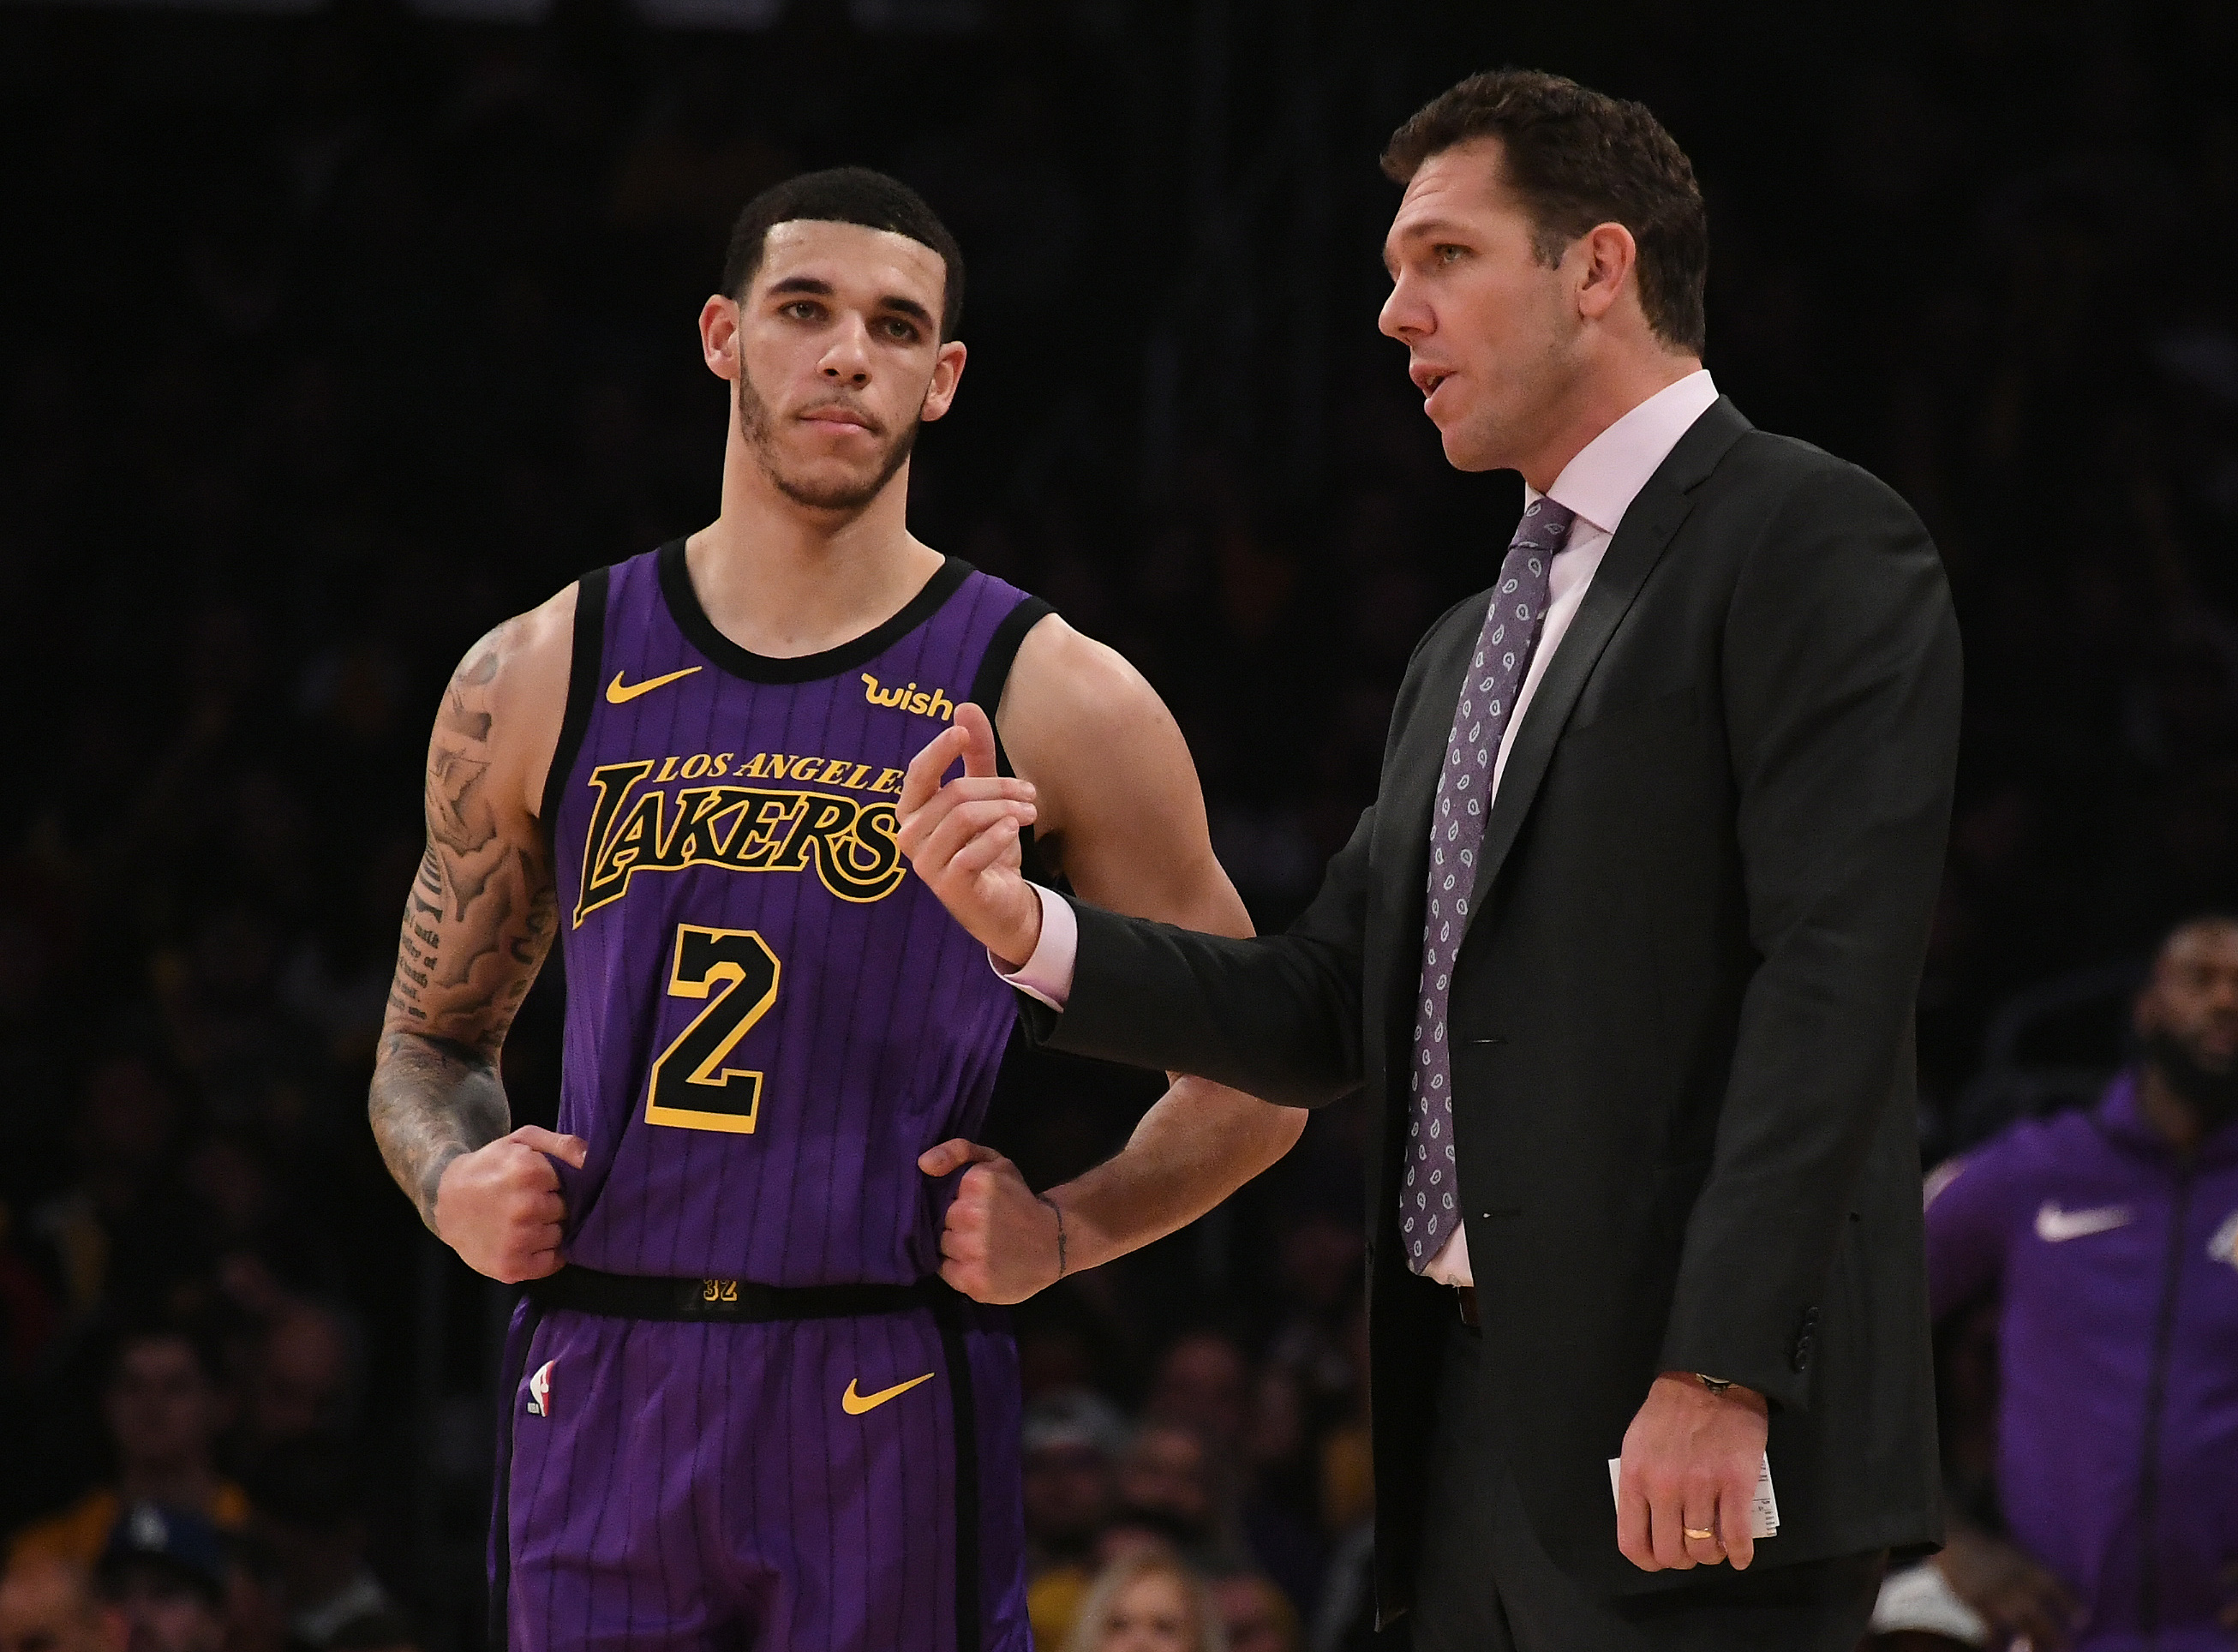 b1591618 Dec 28, 2018; Los Angeles, CA, USA; Los Angeles Lakers guard Lonzo Ball (2)  talks to head coach Luke Walton in the second half against the LA Clippers  at ...